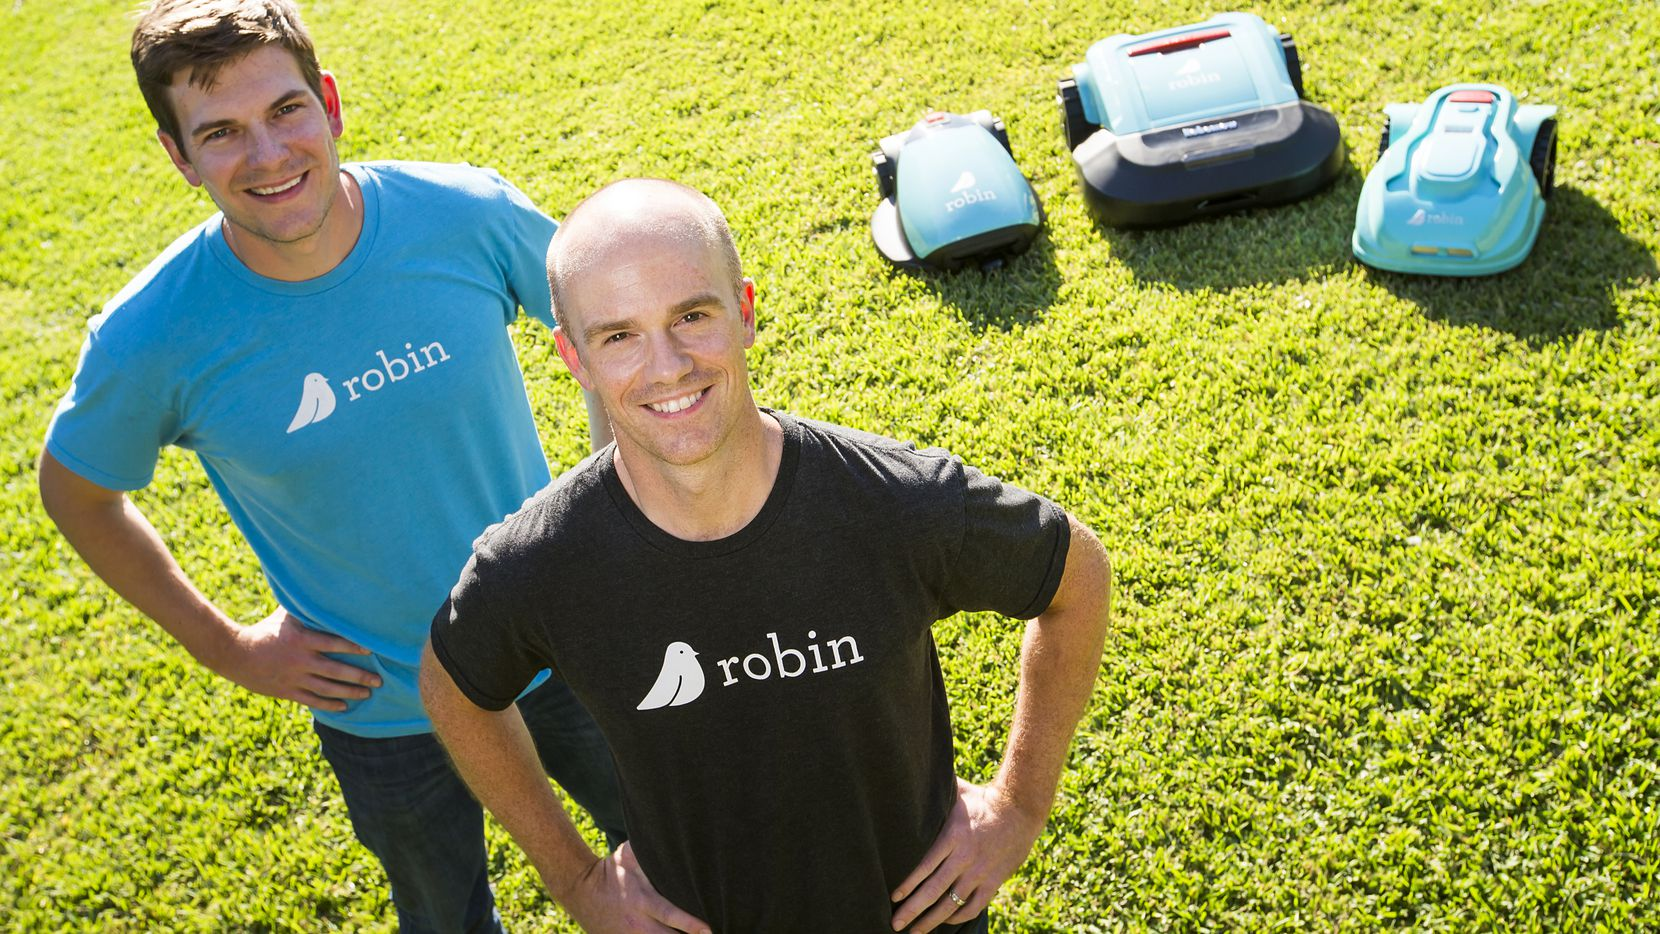 Robin cofounders Bart Lomont (left) and Justin Crandall with a few of their roomba-like lawnmowers on Monday, Oct. 17, 2016, in Dallas.  The Dallas lawn care company plans to launch a robotic service. (Smiley N. Pool/The Dallas Morning News)